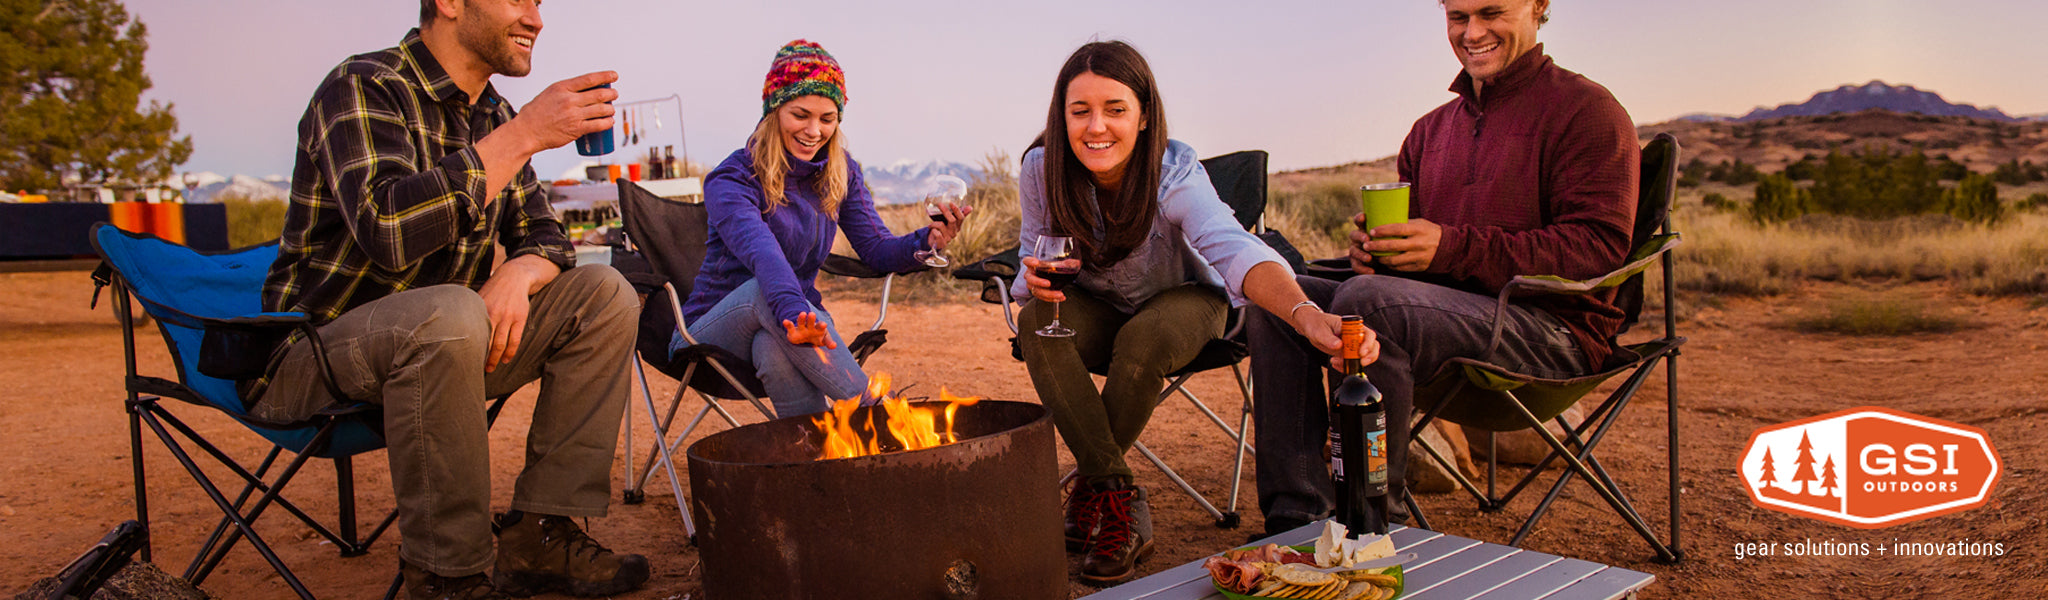 GSI Outdoors - camping plates, cups, tableware, cutlery Australia's largest GSI dealer